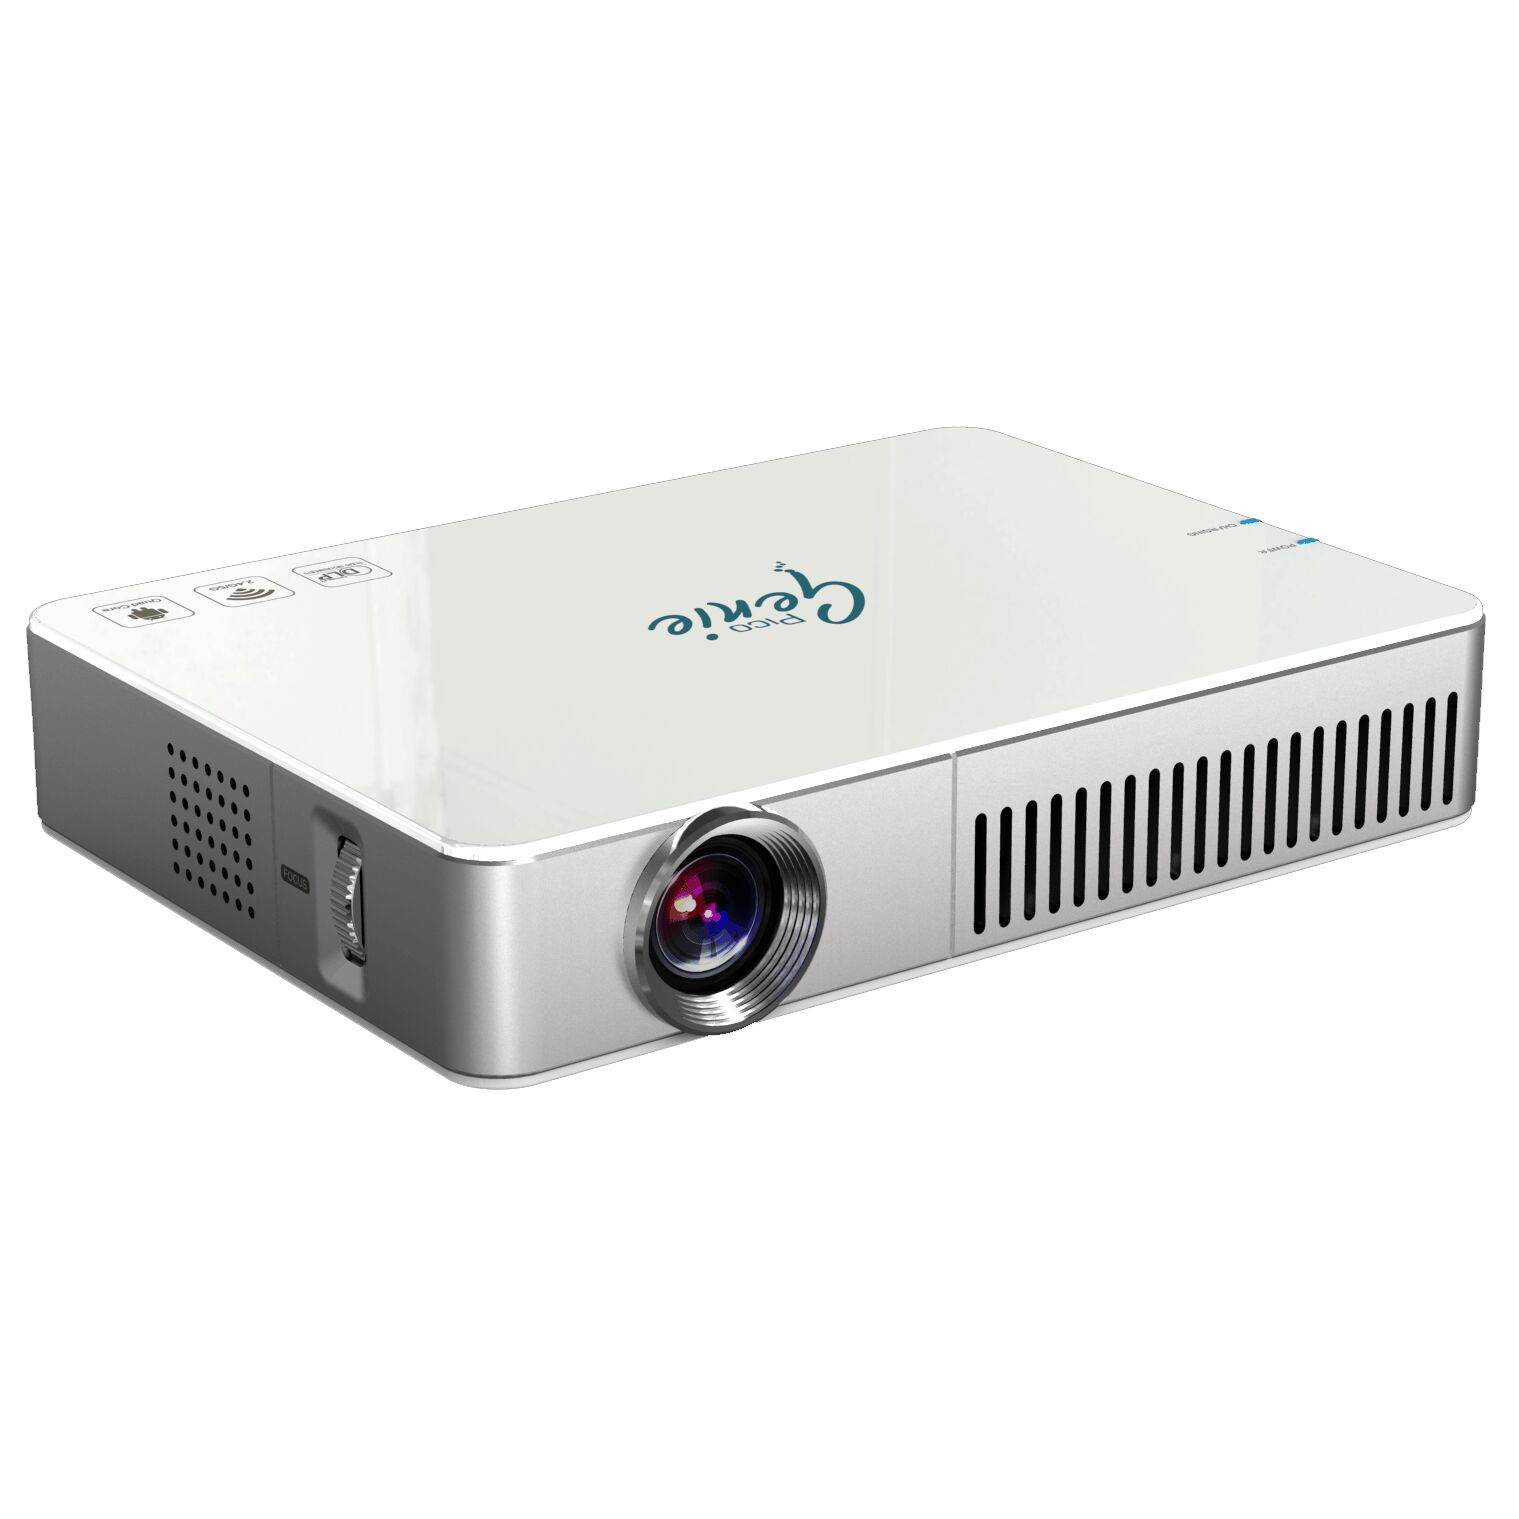 Pico genie m550 plus hd led projector for Hd pico projector